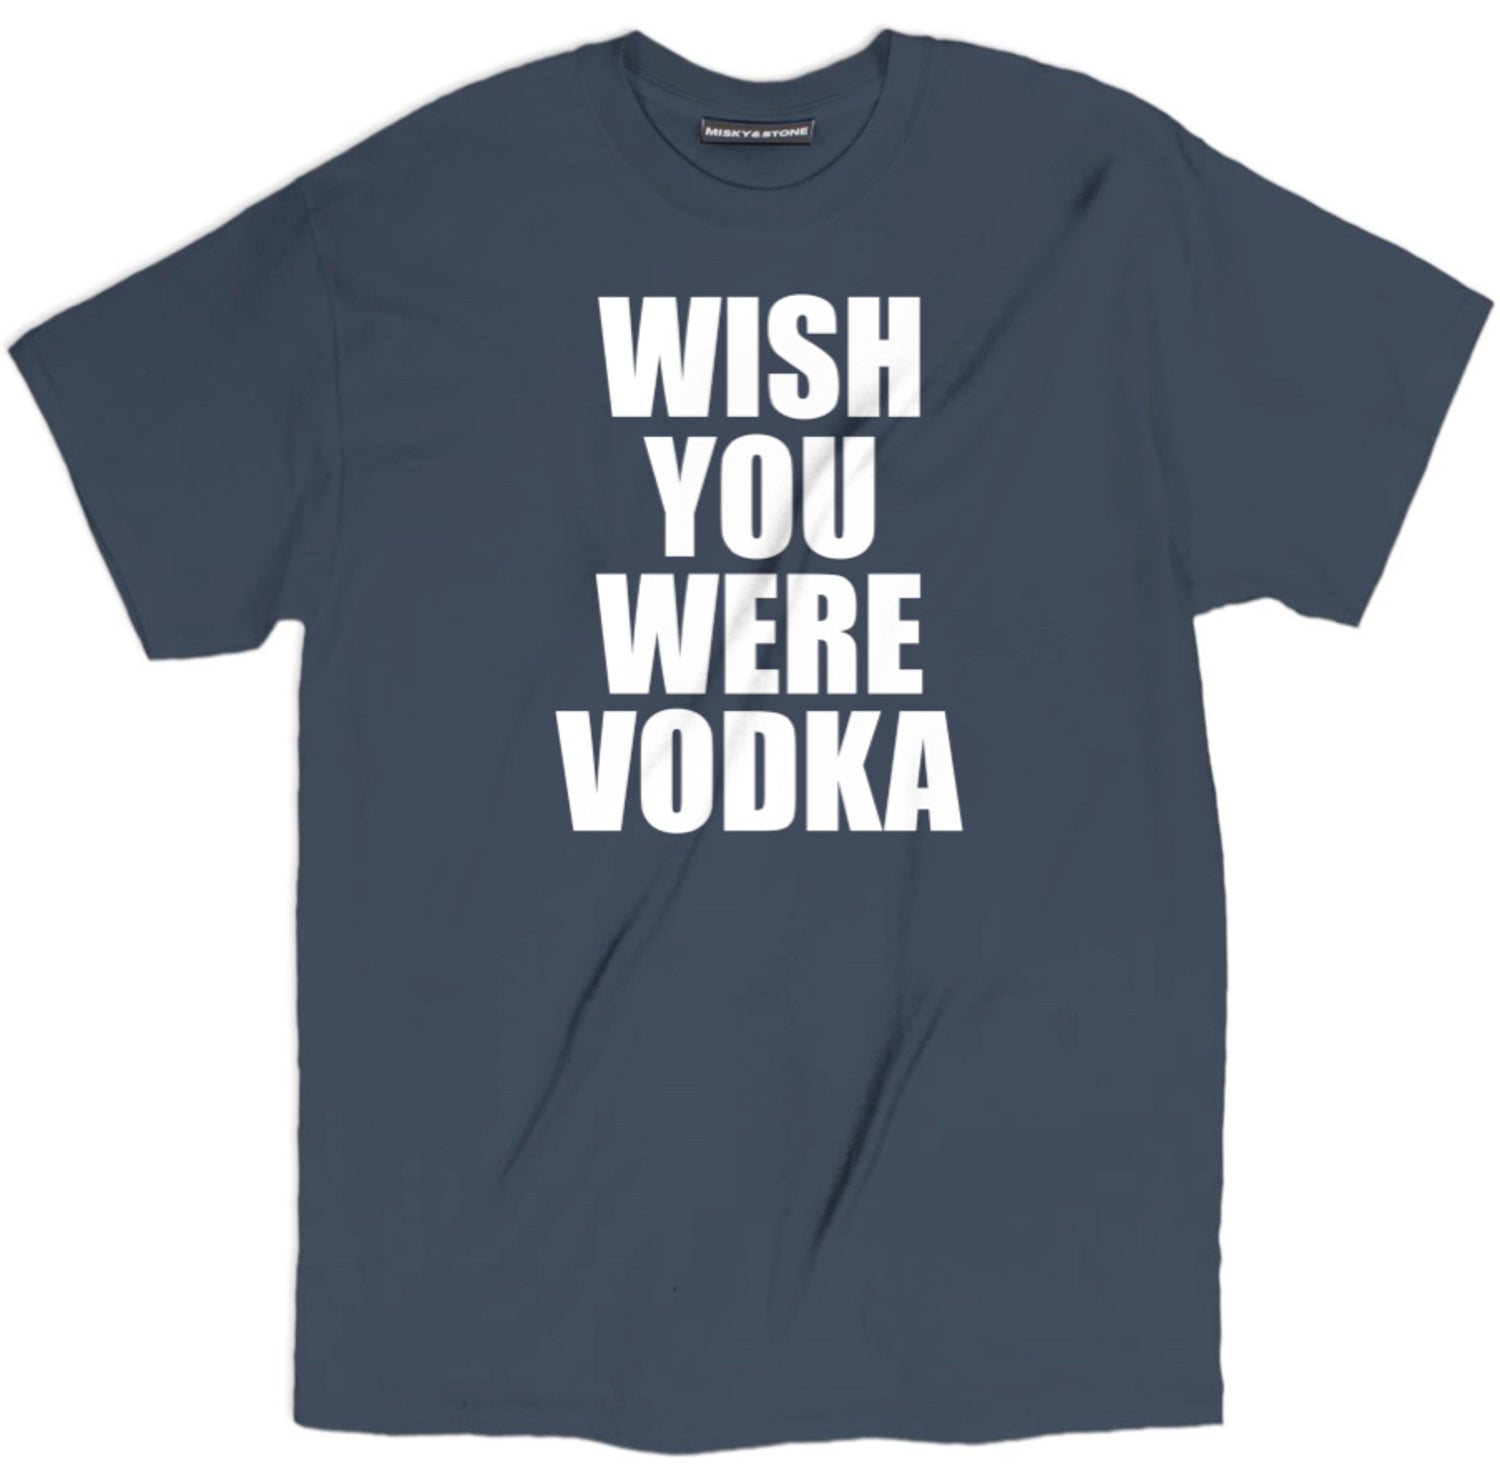 wish you were vodka shirt, funny vodka shirt, drunk shirts, drunk t shirts, day drunk shirt, funny drunk shirts, drunk 1 drunk 2 shirts, funny beer shirts, funny beer t shirts, drinking shirts, alcohol shirts, alcohol t shirts, funny drinking shirts, beer shirts,